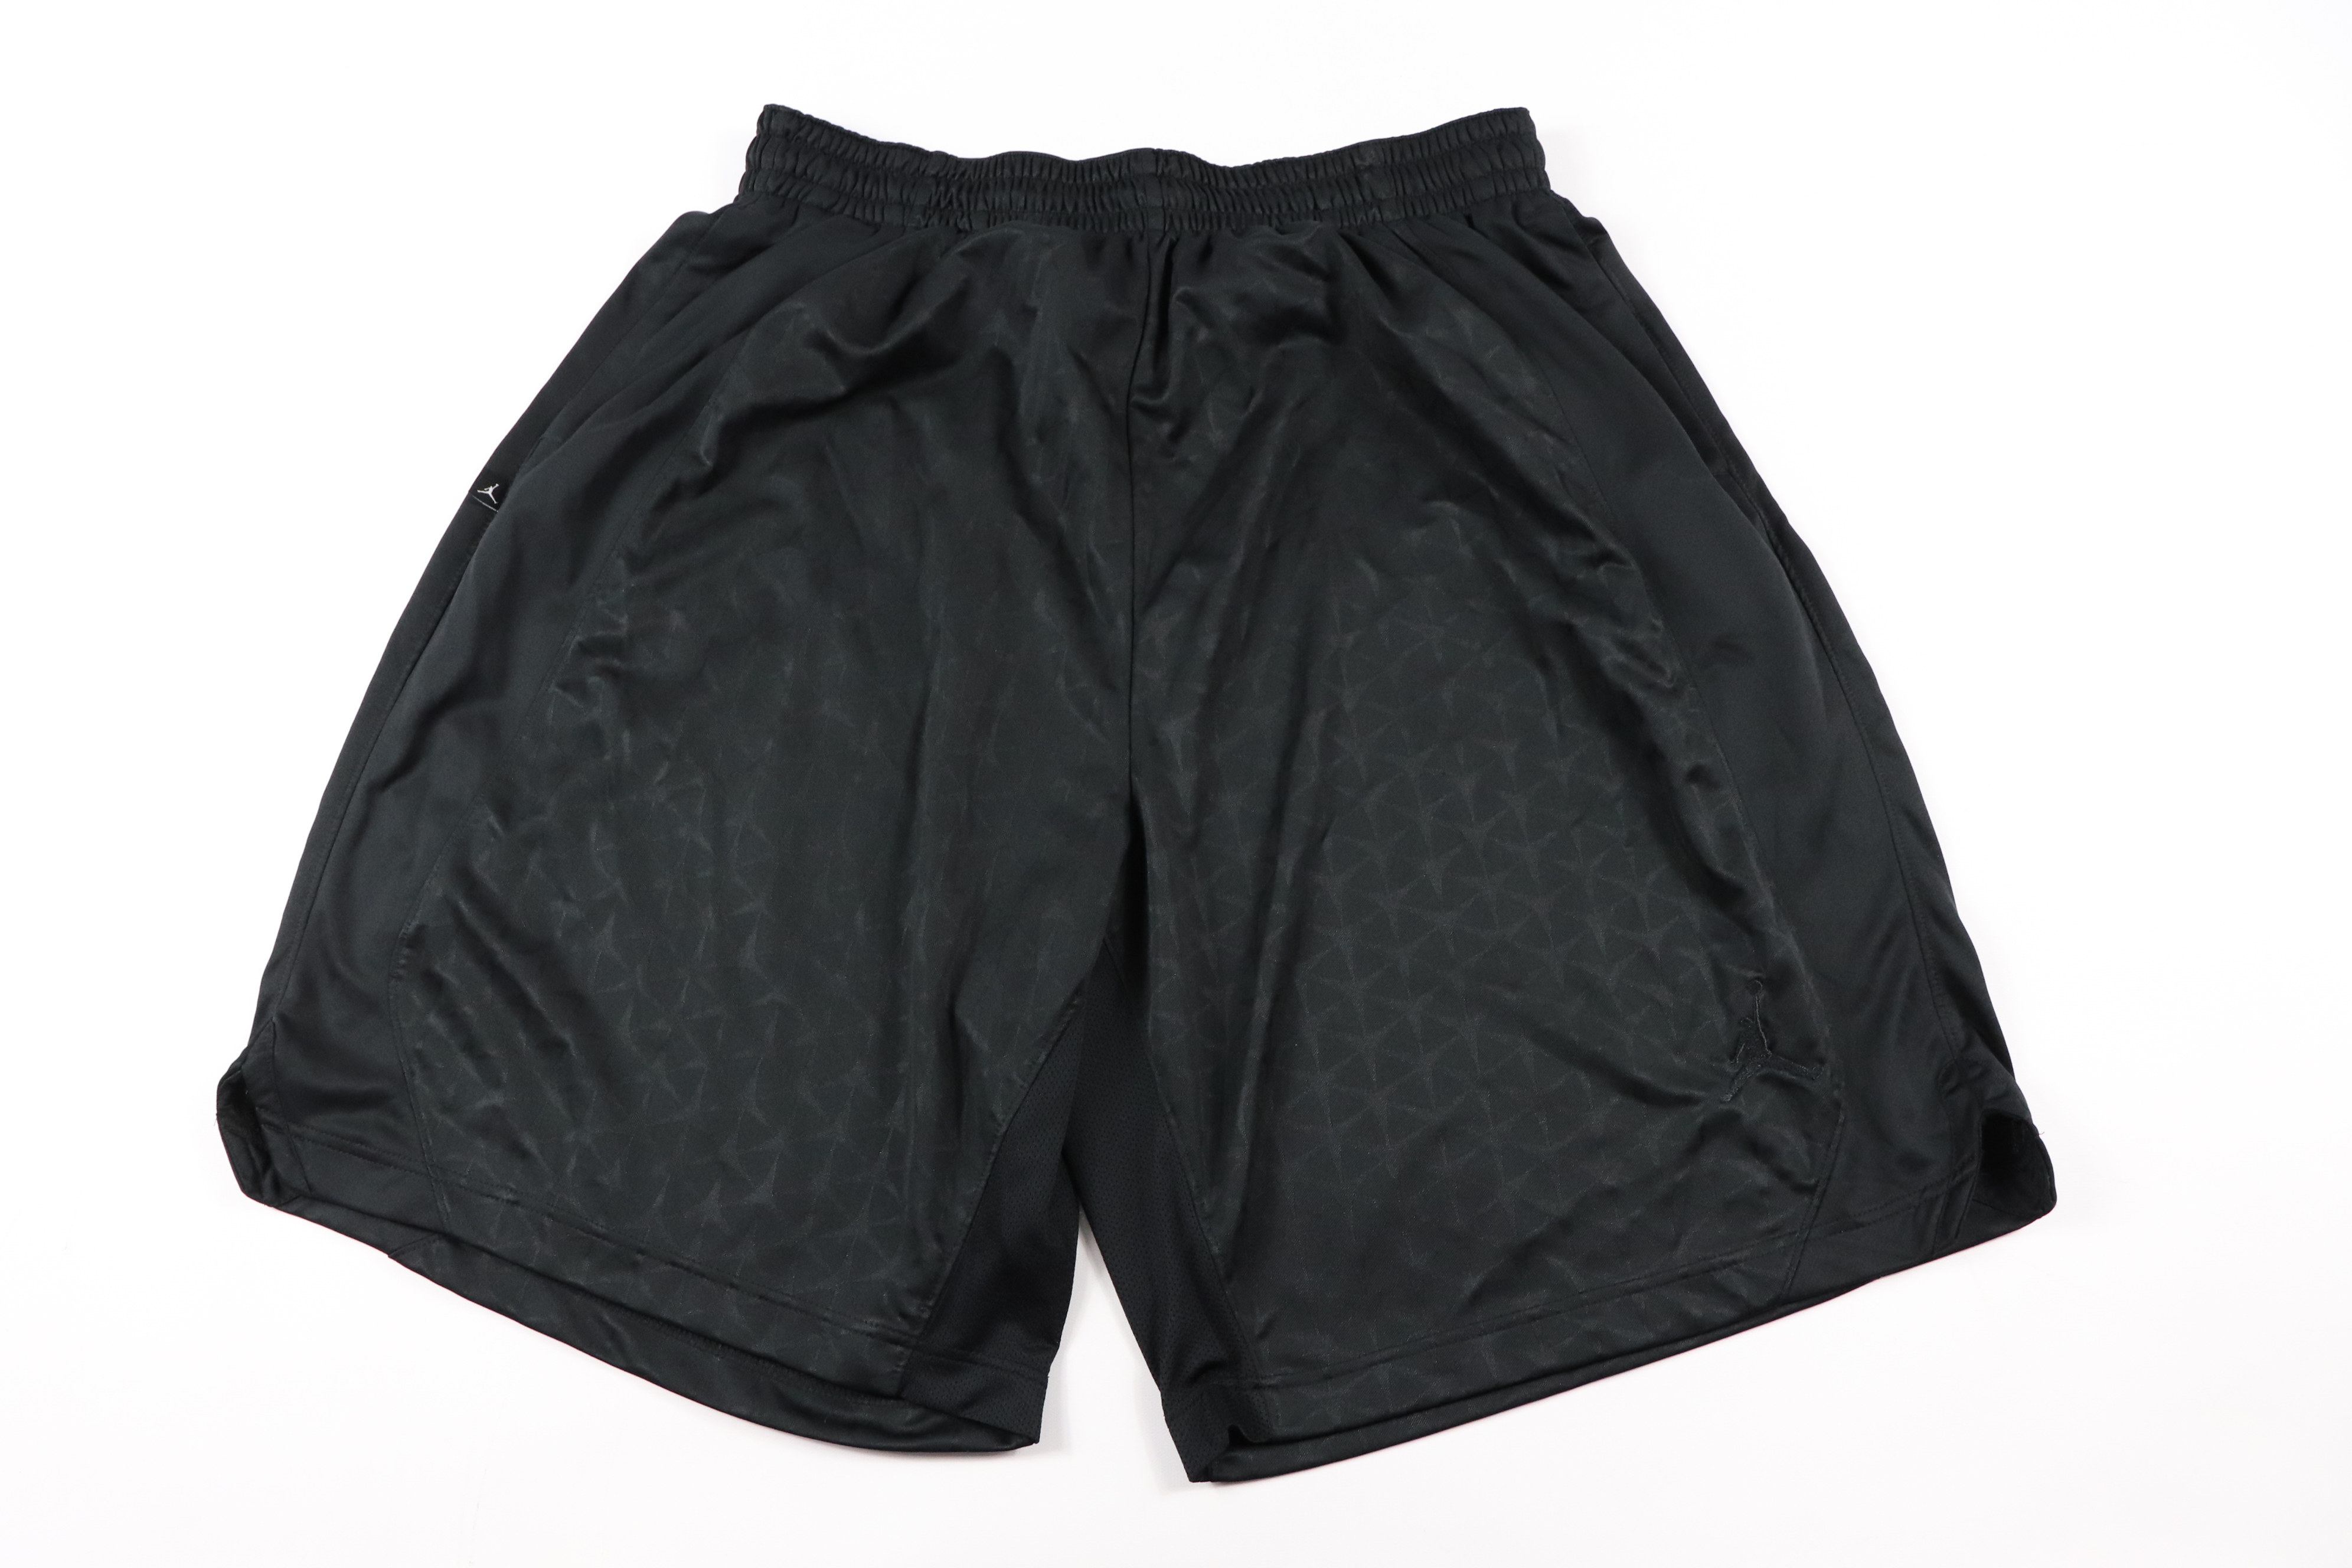 729c72a687d Nike × Jordan Brand ×. Nike Air Jordan Mens 3XL Jumpman Athletic Basketball  Shorts Black Polyester